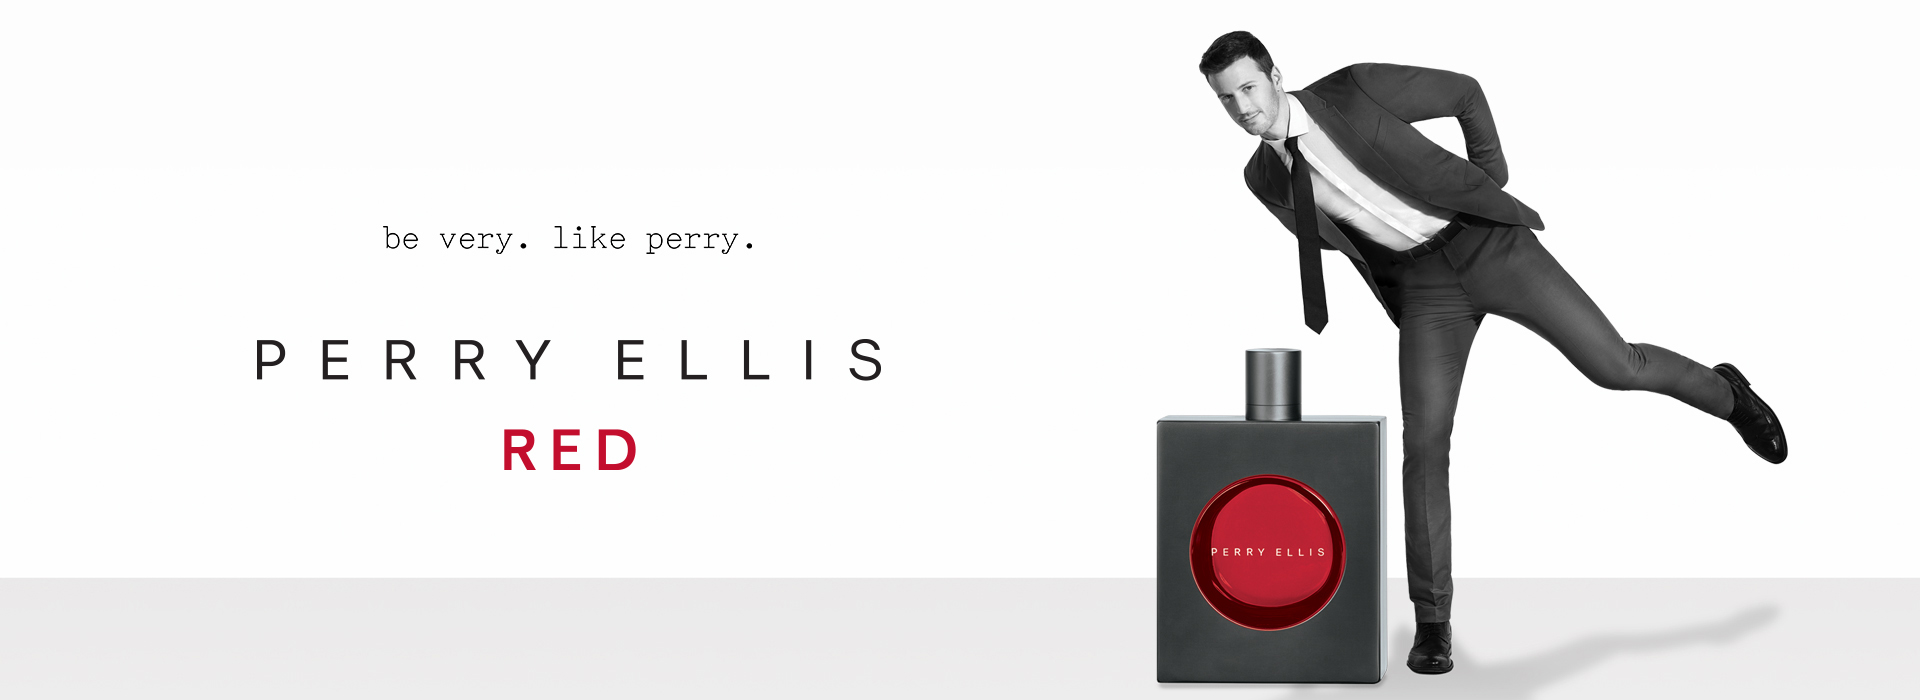 Perry Ellis RED